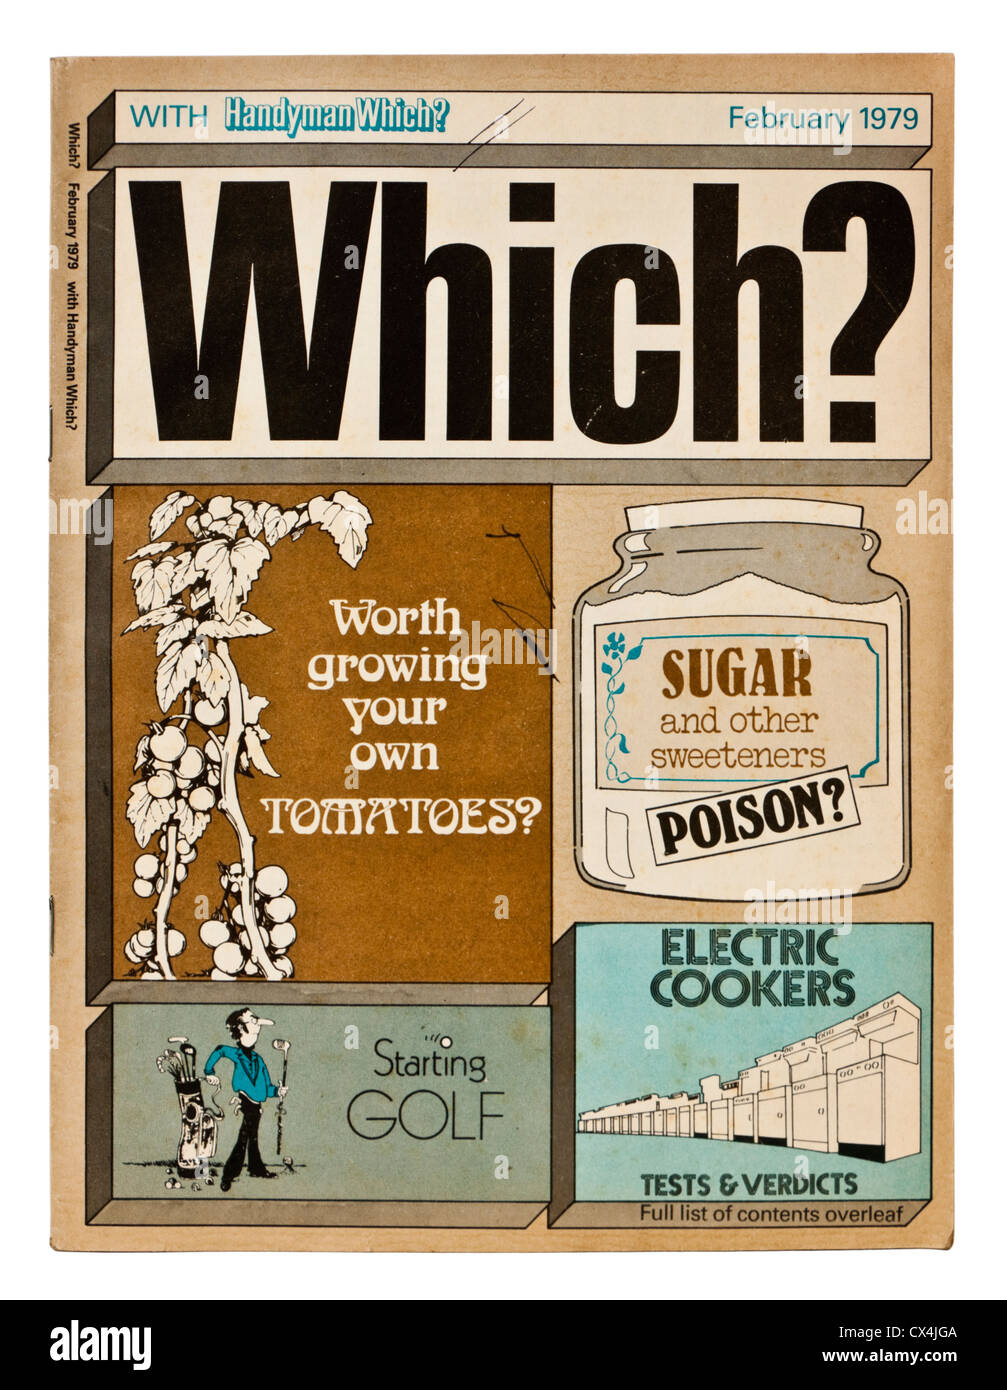 February 1979 issue of Which? consumer magazine - Stock Image